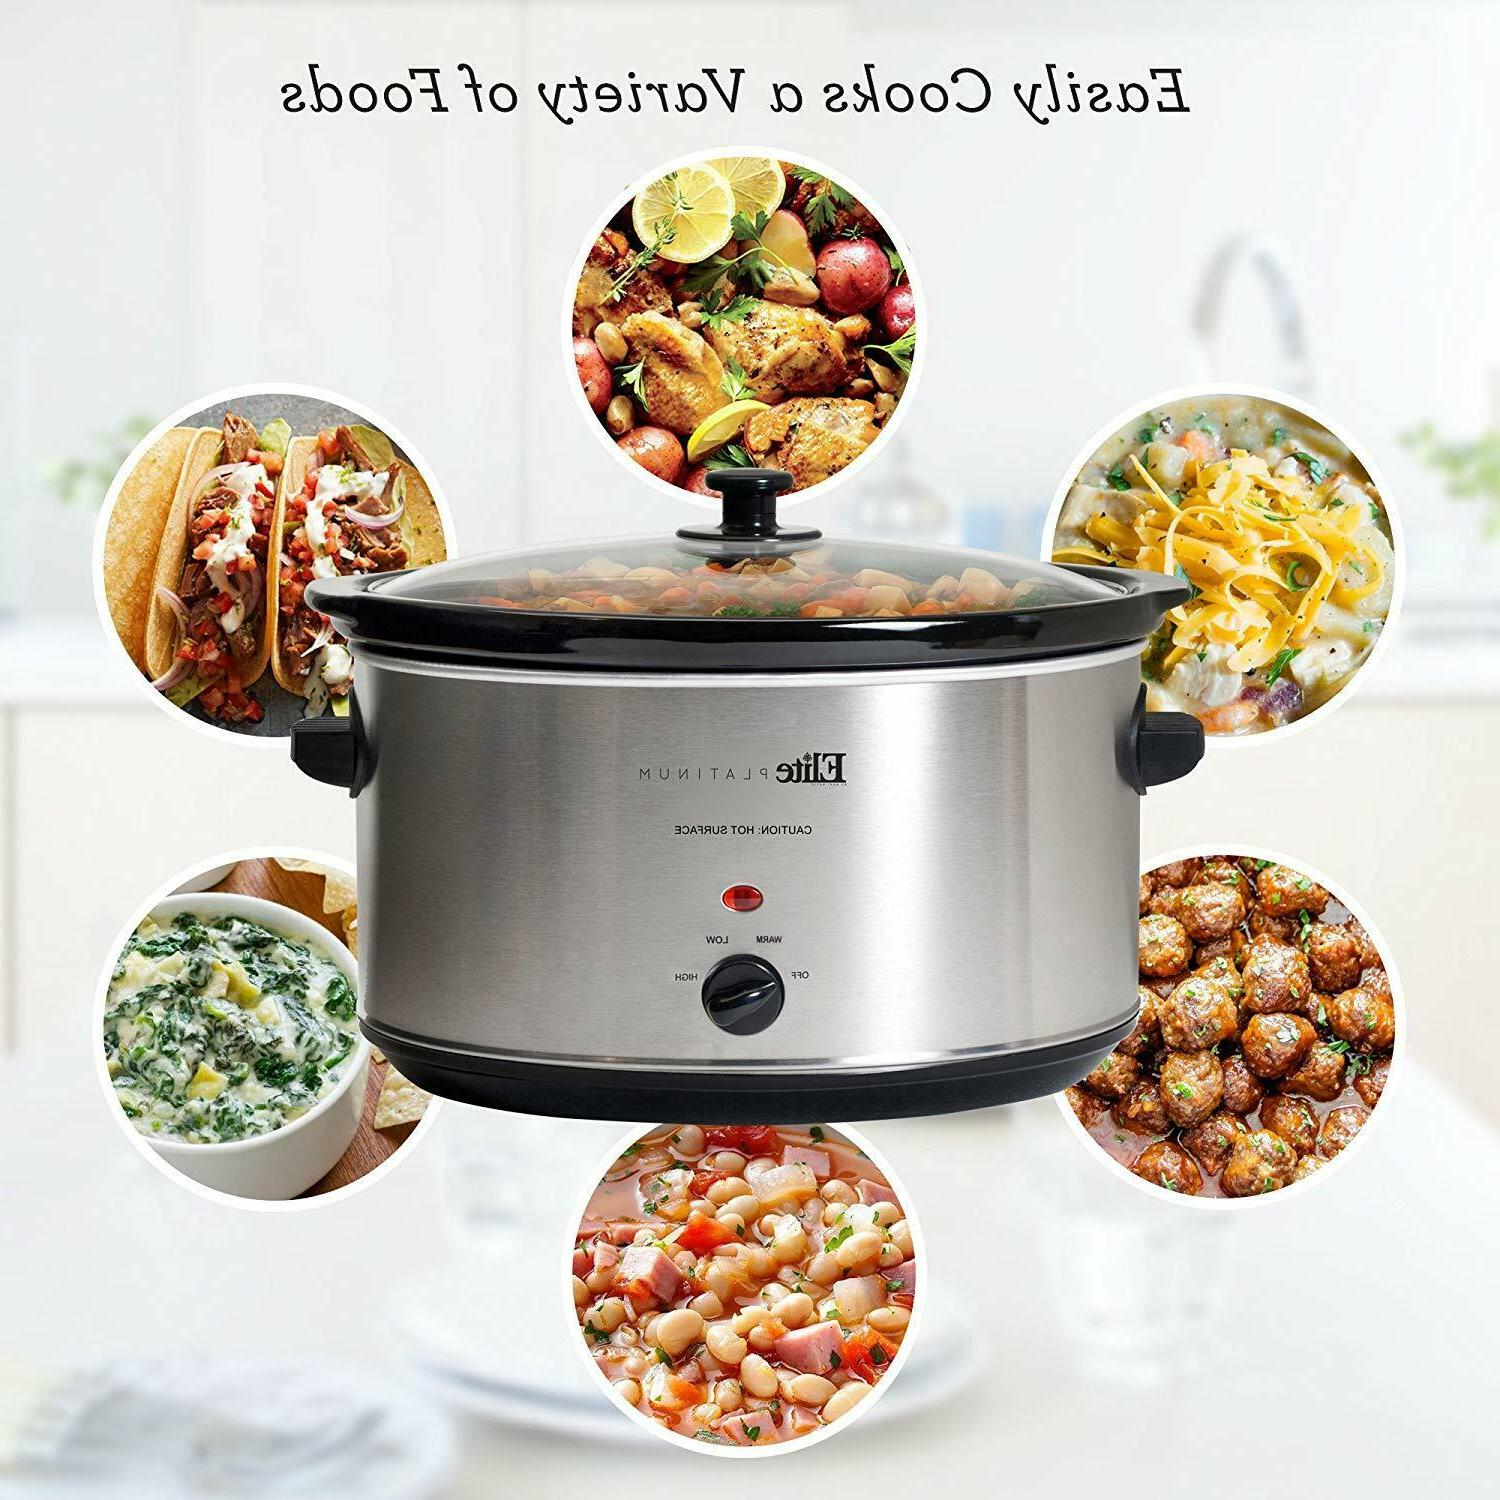 Large Capacity Crock Pot Stainless Steel Slow Cooker Oval Ma